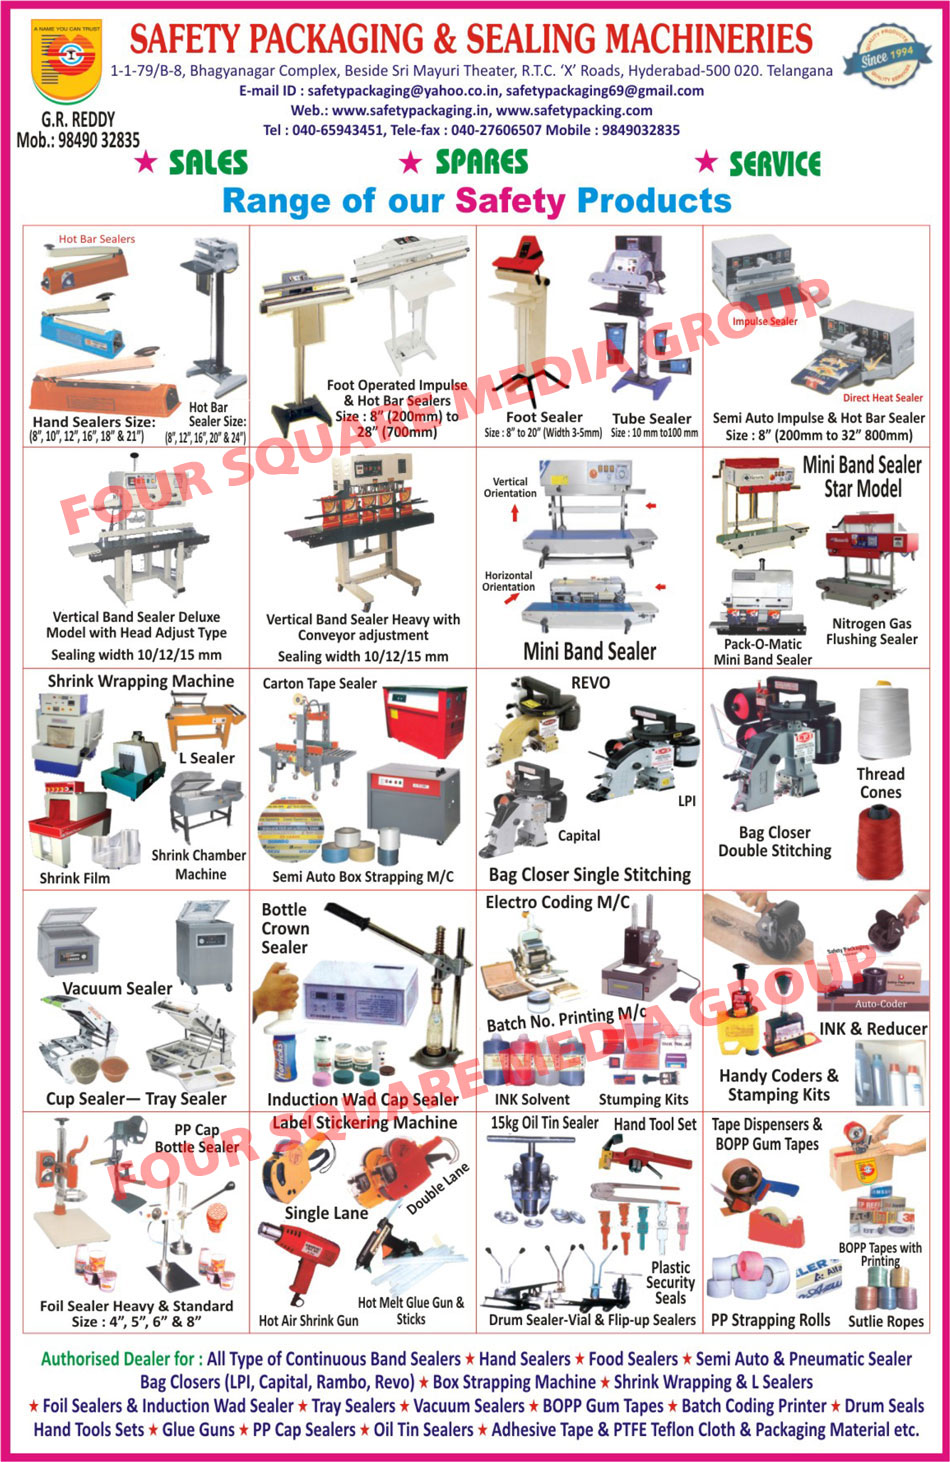 Hot Bar Sealers, Hand Sealers, Foot Operated Impulse Sealers, Foot Sealers, Tube Sealers, Semi Auto Impulse Sealers, Impulse Sealers, Direct Heat Sealers, Vertical Band Sealers, Mini Band Sealers, Pack O Matic Mini Band Sealers, Nitrogen Gas Flushing Sealers, Shrink Films, Shrink Chamber Machines, Semi Automatic Box Strapping Machines, Shrink Wrapping Machines, Carton Tape Sealers, Bag Closer Single Stitching Machines, Bag Closer Double Stitching Machines, Thread Cones, Vacuum Sealers, Cup Sealers, Tray Sealers, Bottle Crown Sealers, Induction Wad Cap Sealers, Electro Coding Machines, Batch No Printing Machines, Ink Solvents, Stumping Kits, Ink And Reducers, Handy Coders, PP Cap Bottle Sealers, Foil Sealers, Hot Air Shrink Guns, Hot Melt Glue Guns, Hot Melt Glue Sticks, Oil Tin Sealers, Hand Tool Sets, Plastic Security Seals, Vial Drum Sealers, Flip Up Sealers, PP Strapping Rolls, Sutlie Ropes, Sutli Ropes, Bopp Tapes, Tape Dispenser, Bopp Gun Tapes, Continuous Band Sealers, Food Sealers, Semi Automatic Sealers, Pneumatic Sealers, Bag Closers, L Sealers, Induction Wad Sealers, Batch Coding Printers, PP Cap Sealers, Adhesive Tapes, PTFE Teflon Cloth Materials, PTFE Packaging Materials